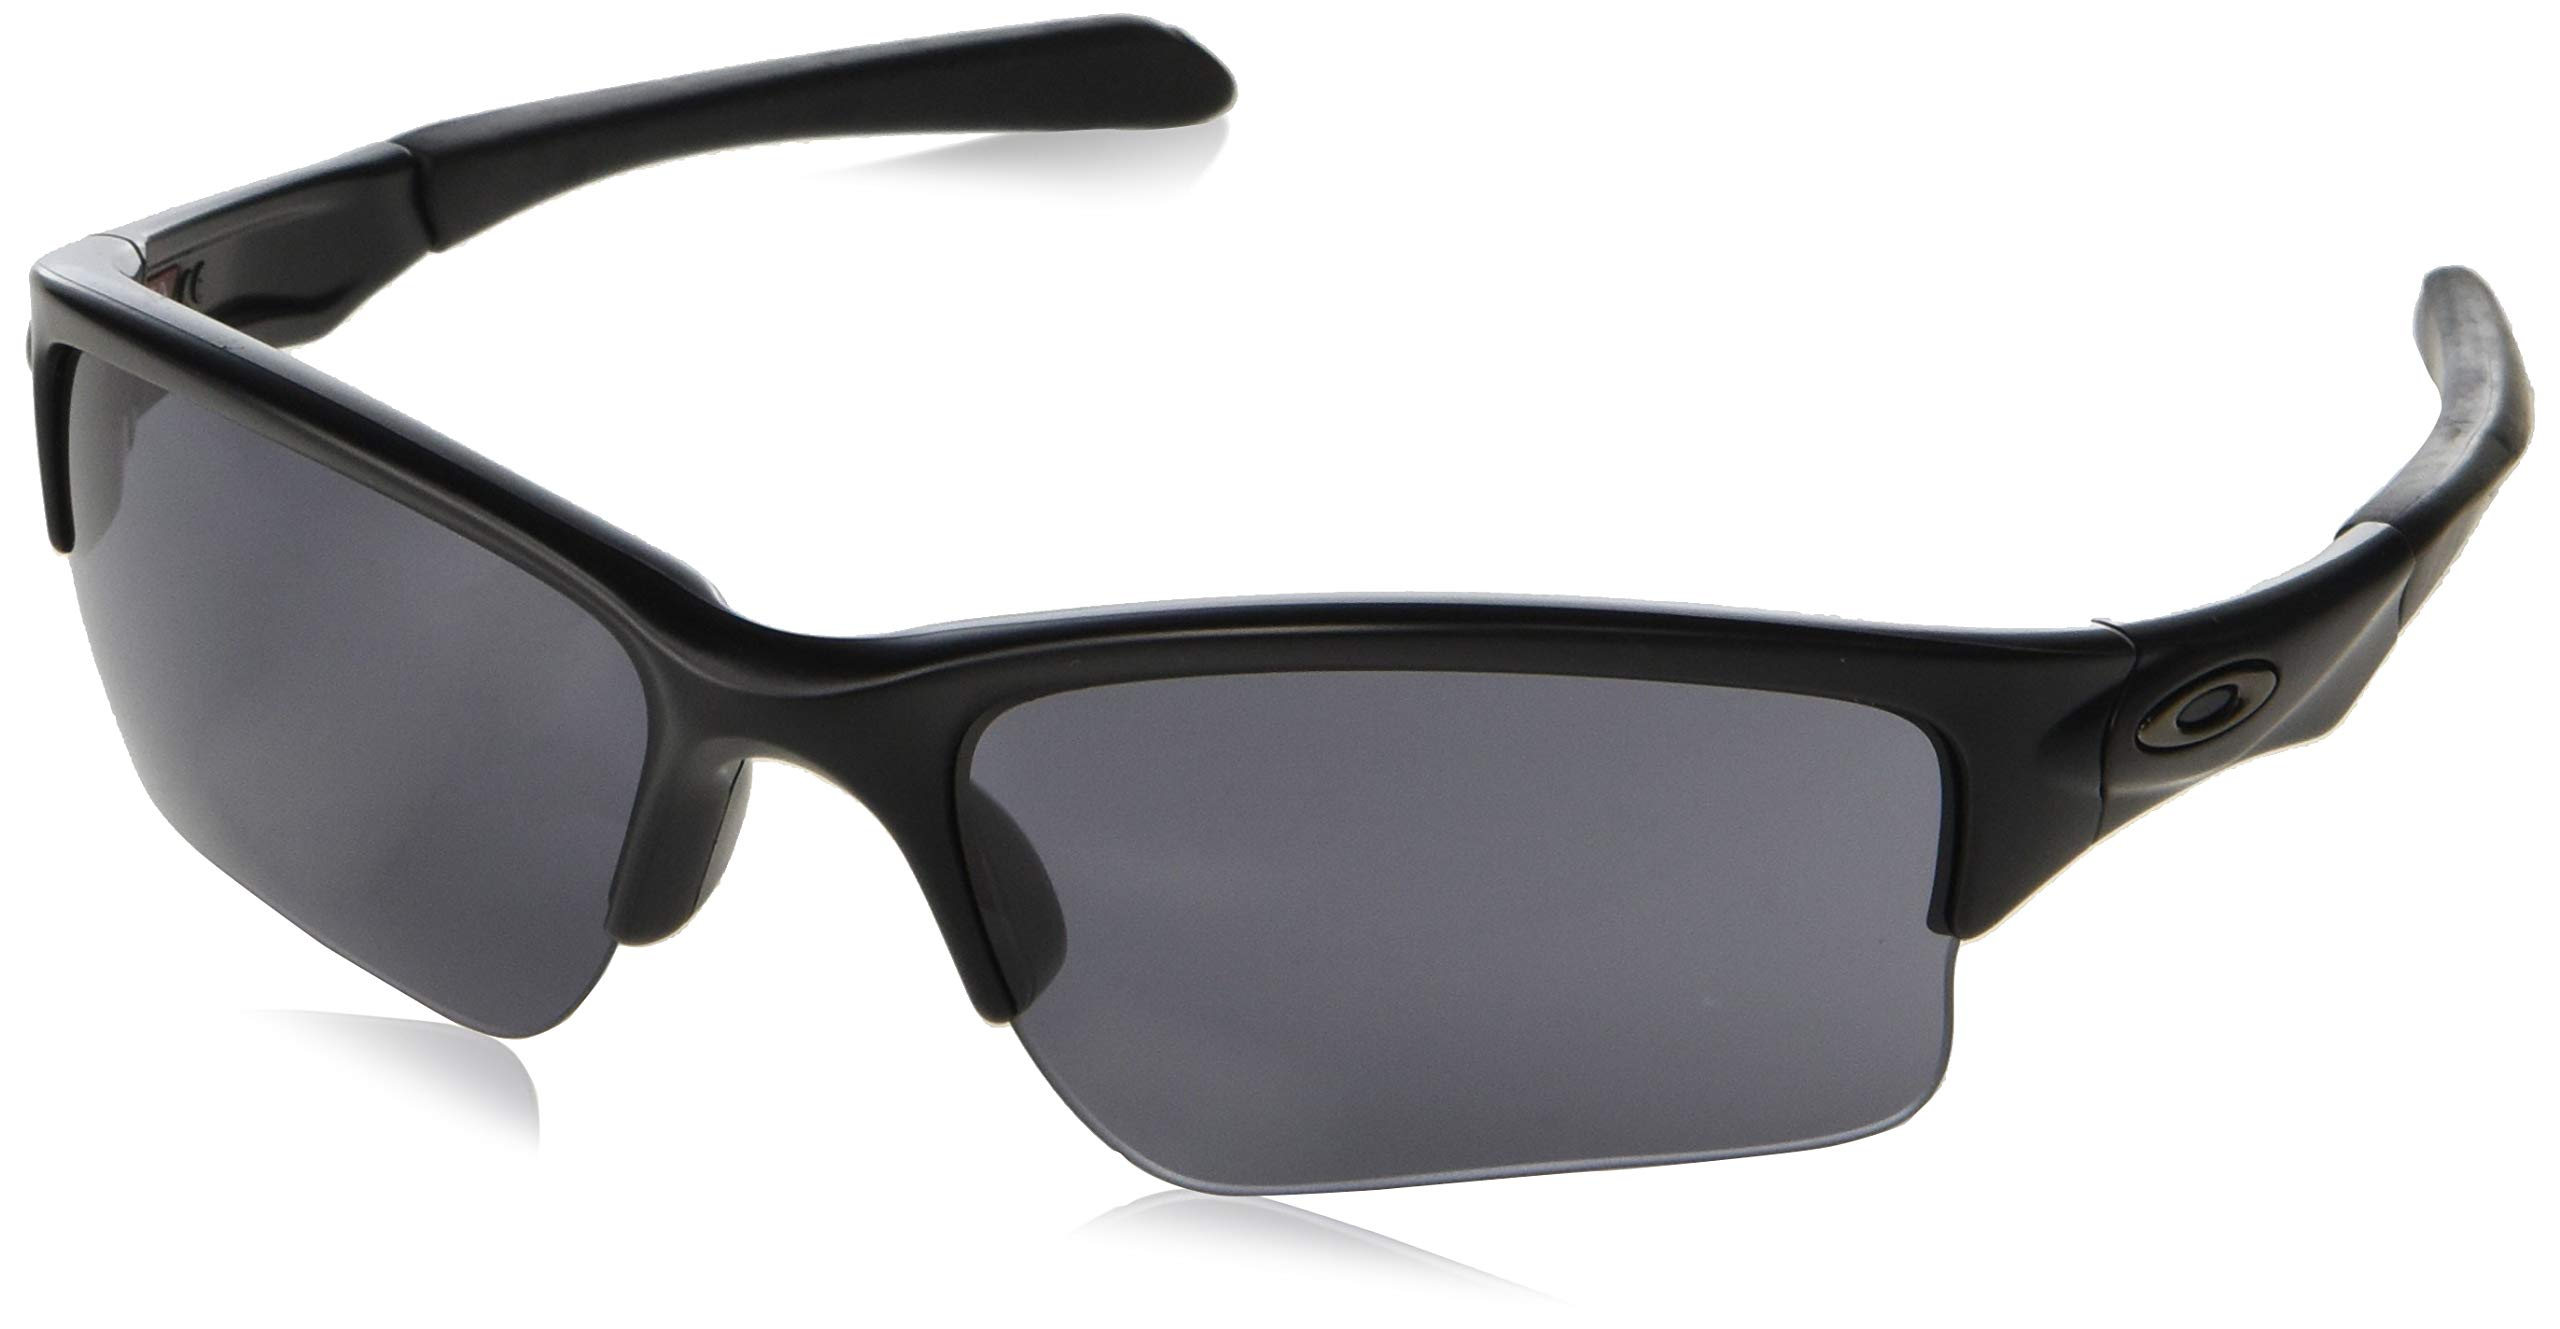 Oakley Youth Boys OO9200 Quarter Jacket Rectangular Sunglasses, Matte Black/Grey, 61 mm